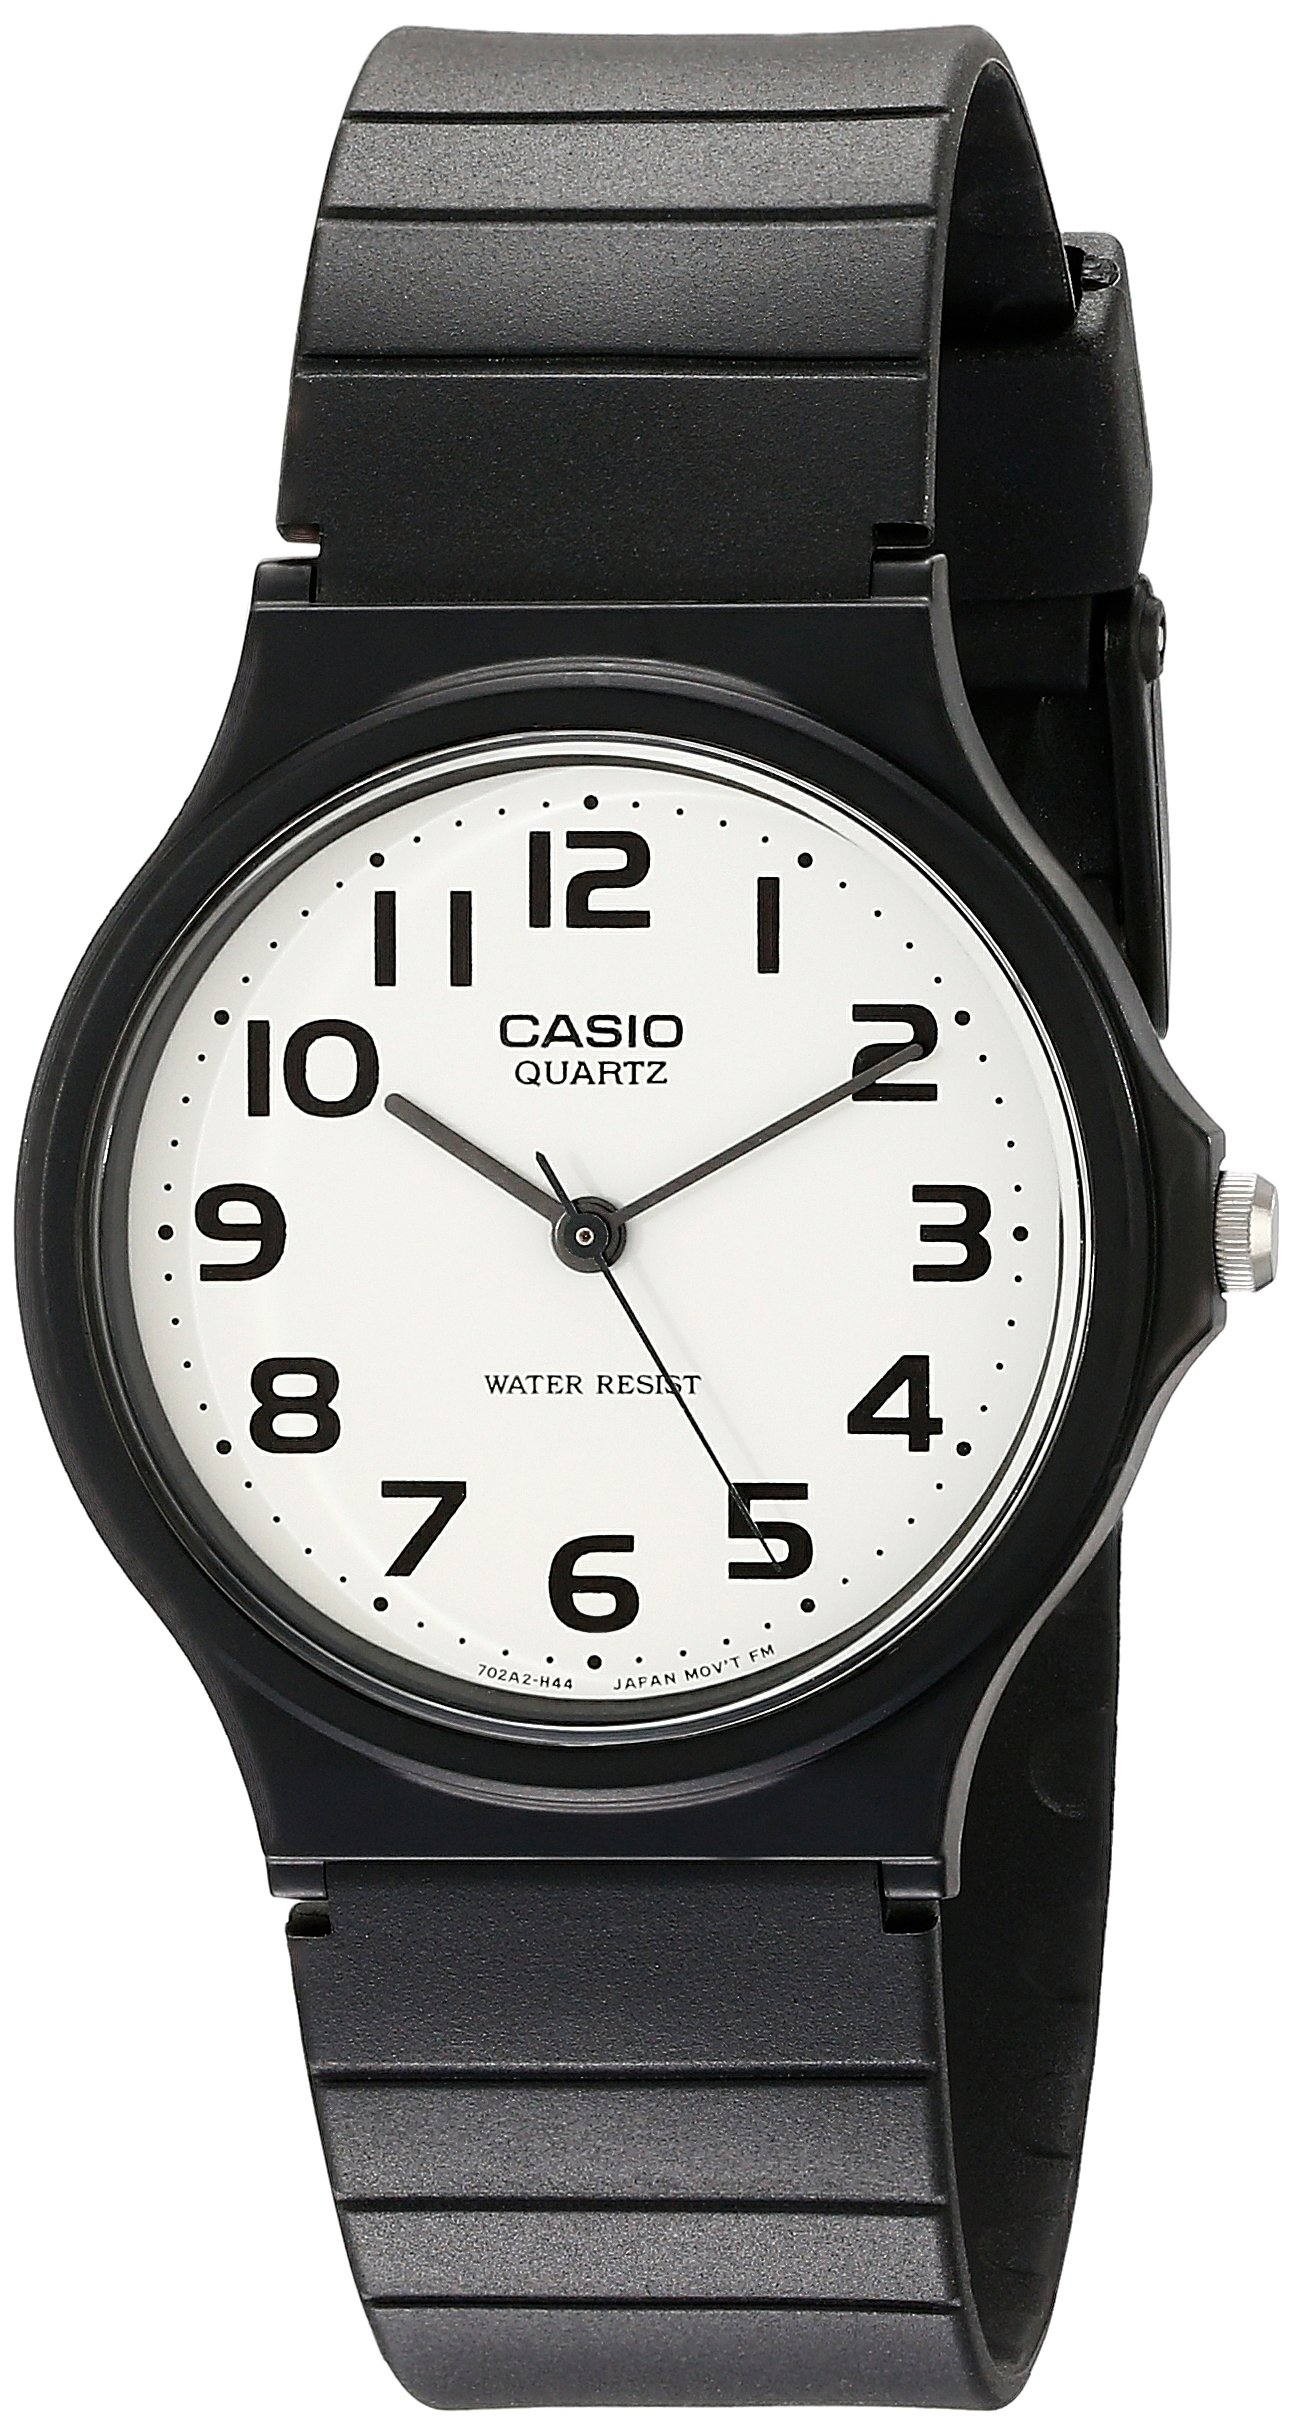 Casio Men's MQ24-7B2 Analog Watch with Black Resin Band by Casio